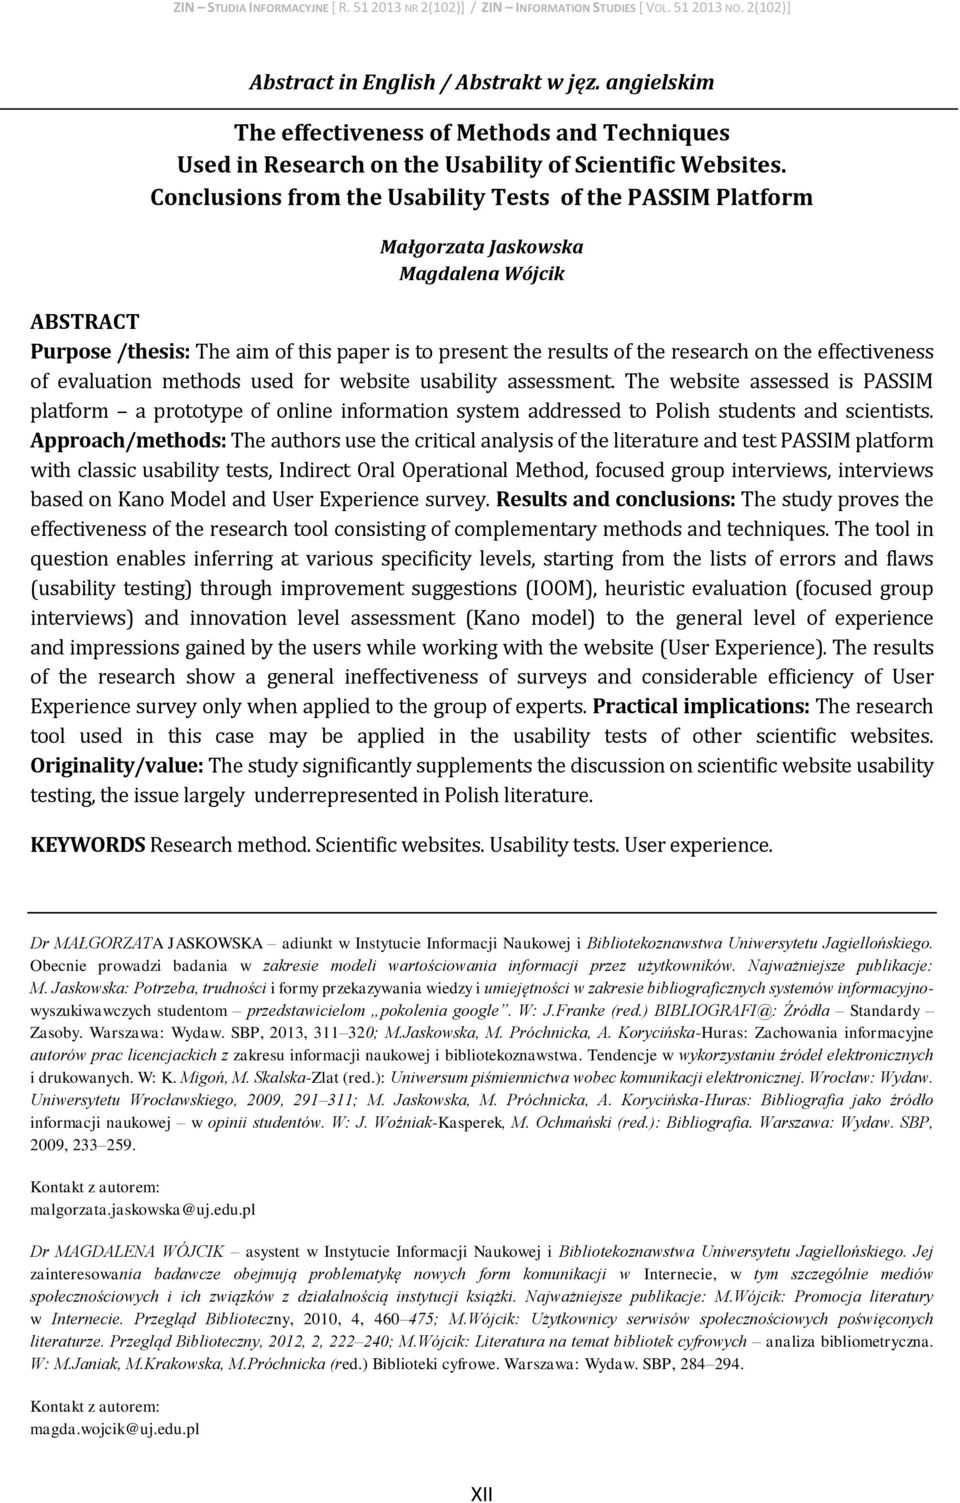 effectiveness of evaluation methods used for website usability assessment. The website assessed is PASSIM platform a prototype of online information system addressed to Polish students and scientists.